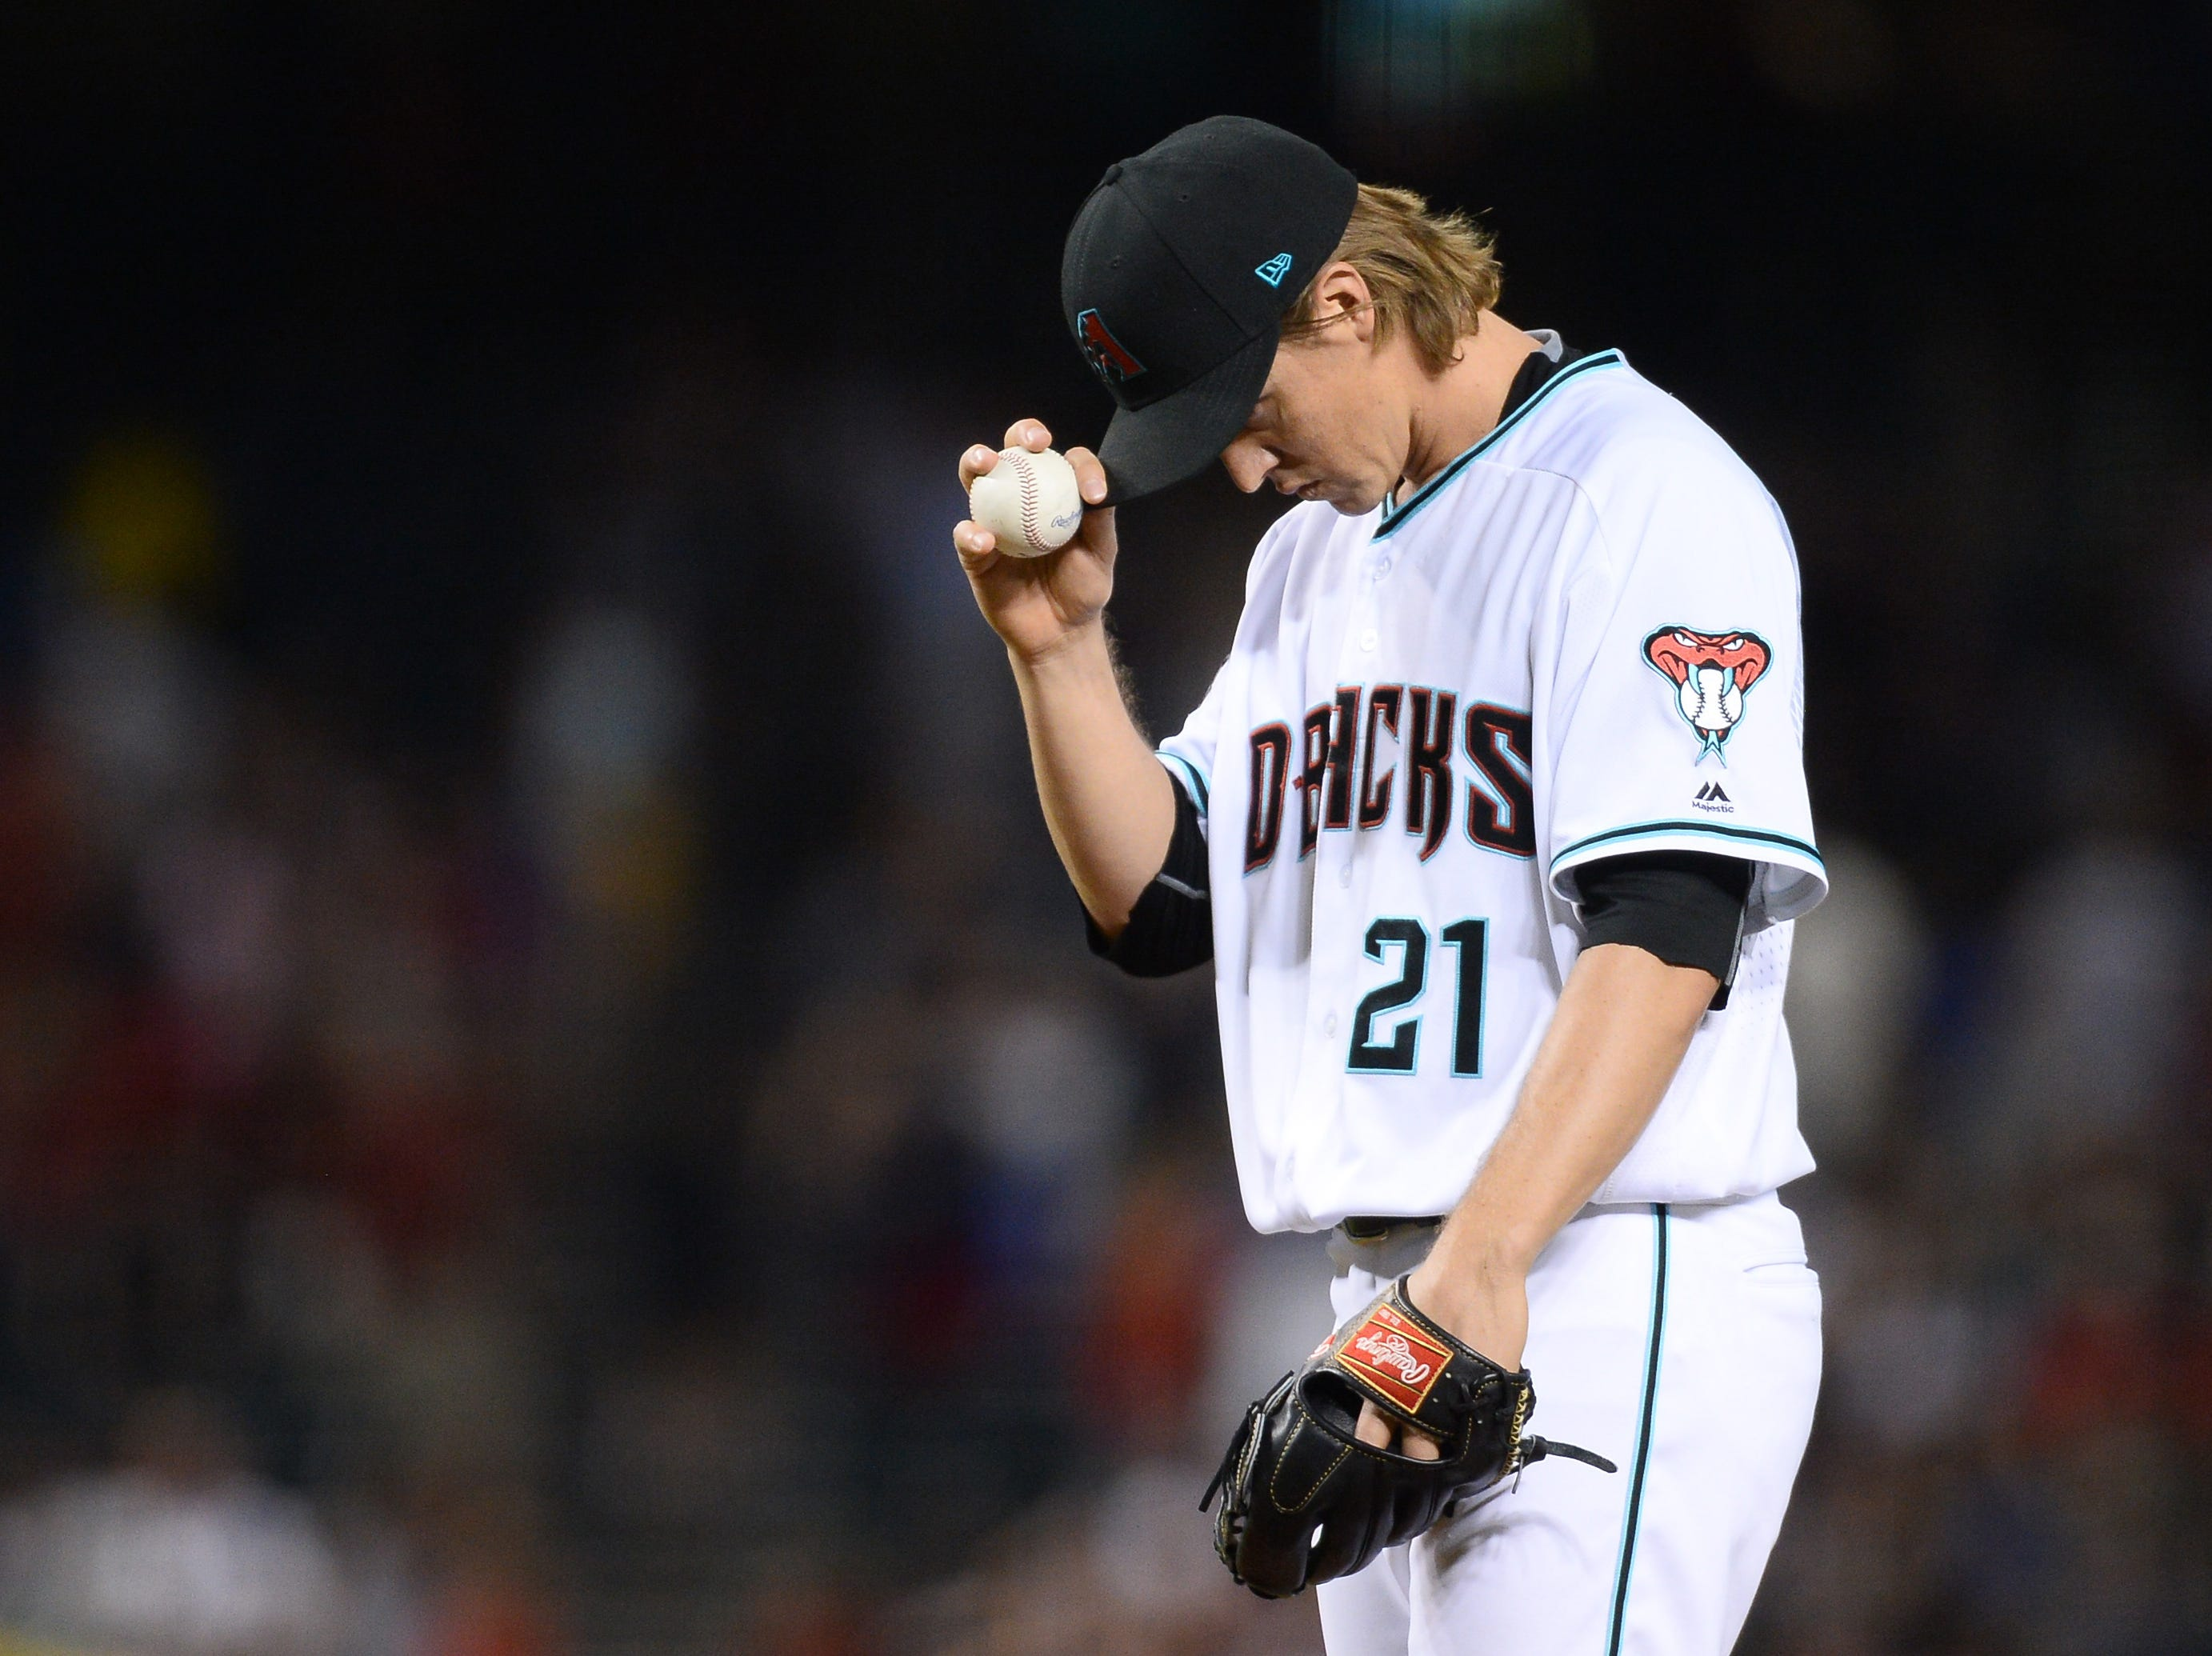 Sep 21, 2018; Phoenix, AZ, USA; Arizona Diamondbacks starting pitcher Zack Greinke (21) looks on against the Colorado Rockies during the first inning at Chase Field.